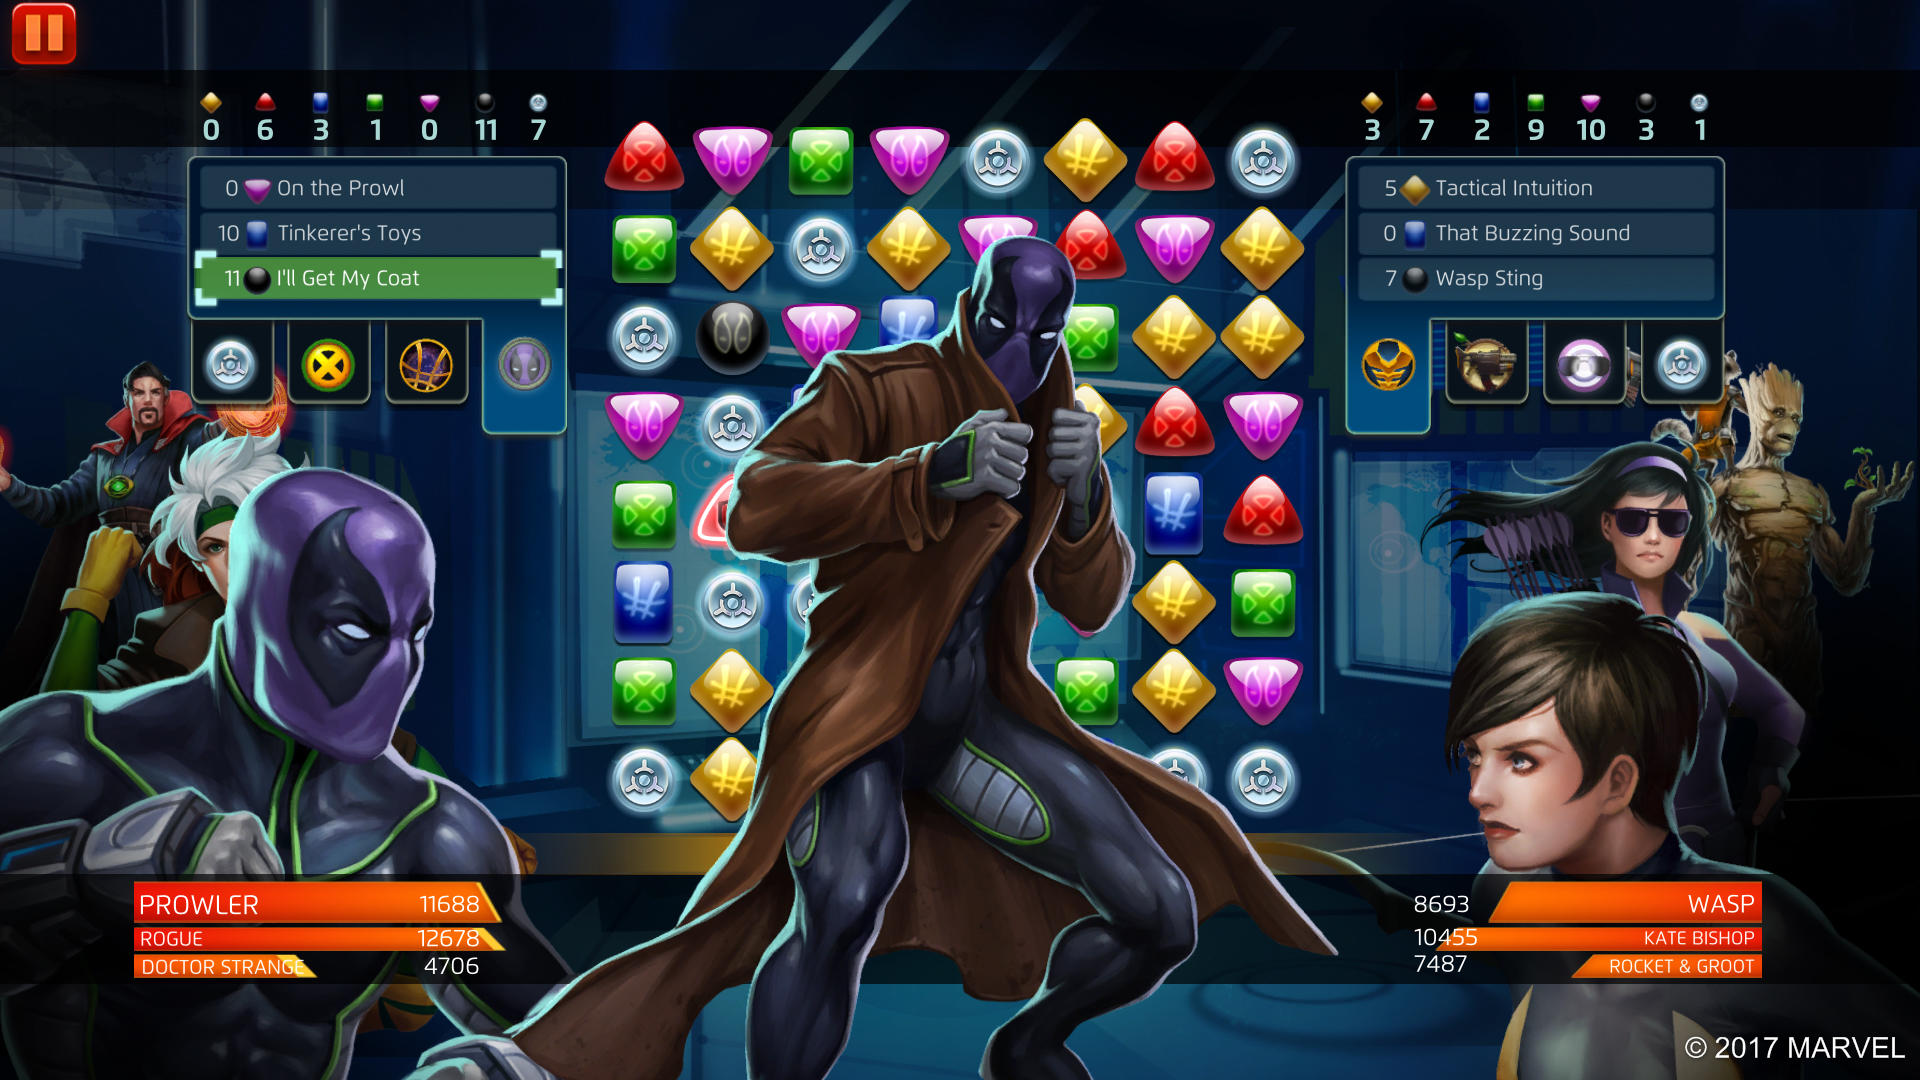 Marvel Puzzle Quest - Prowler - I